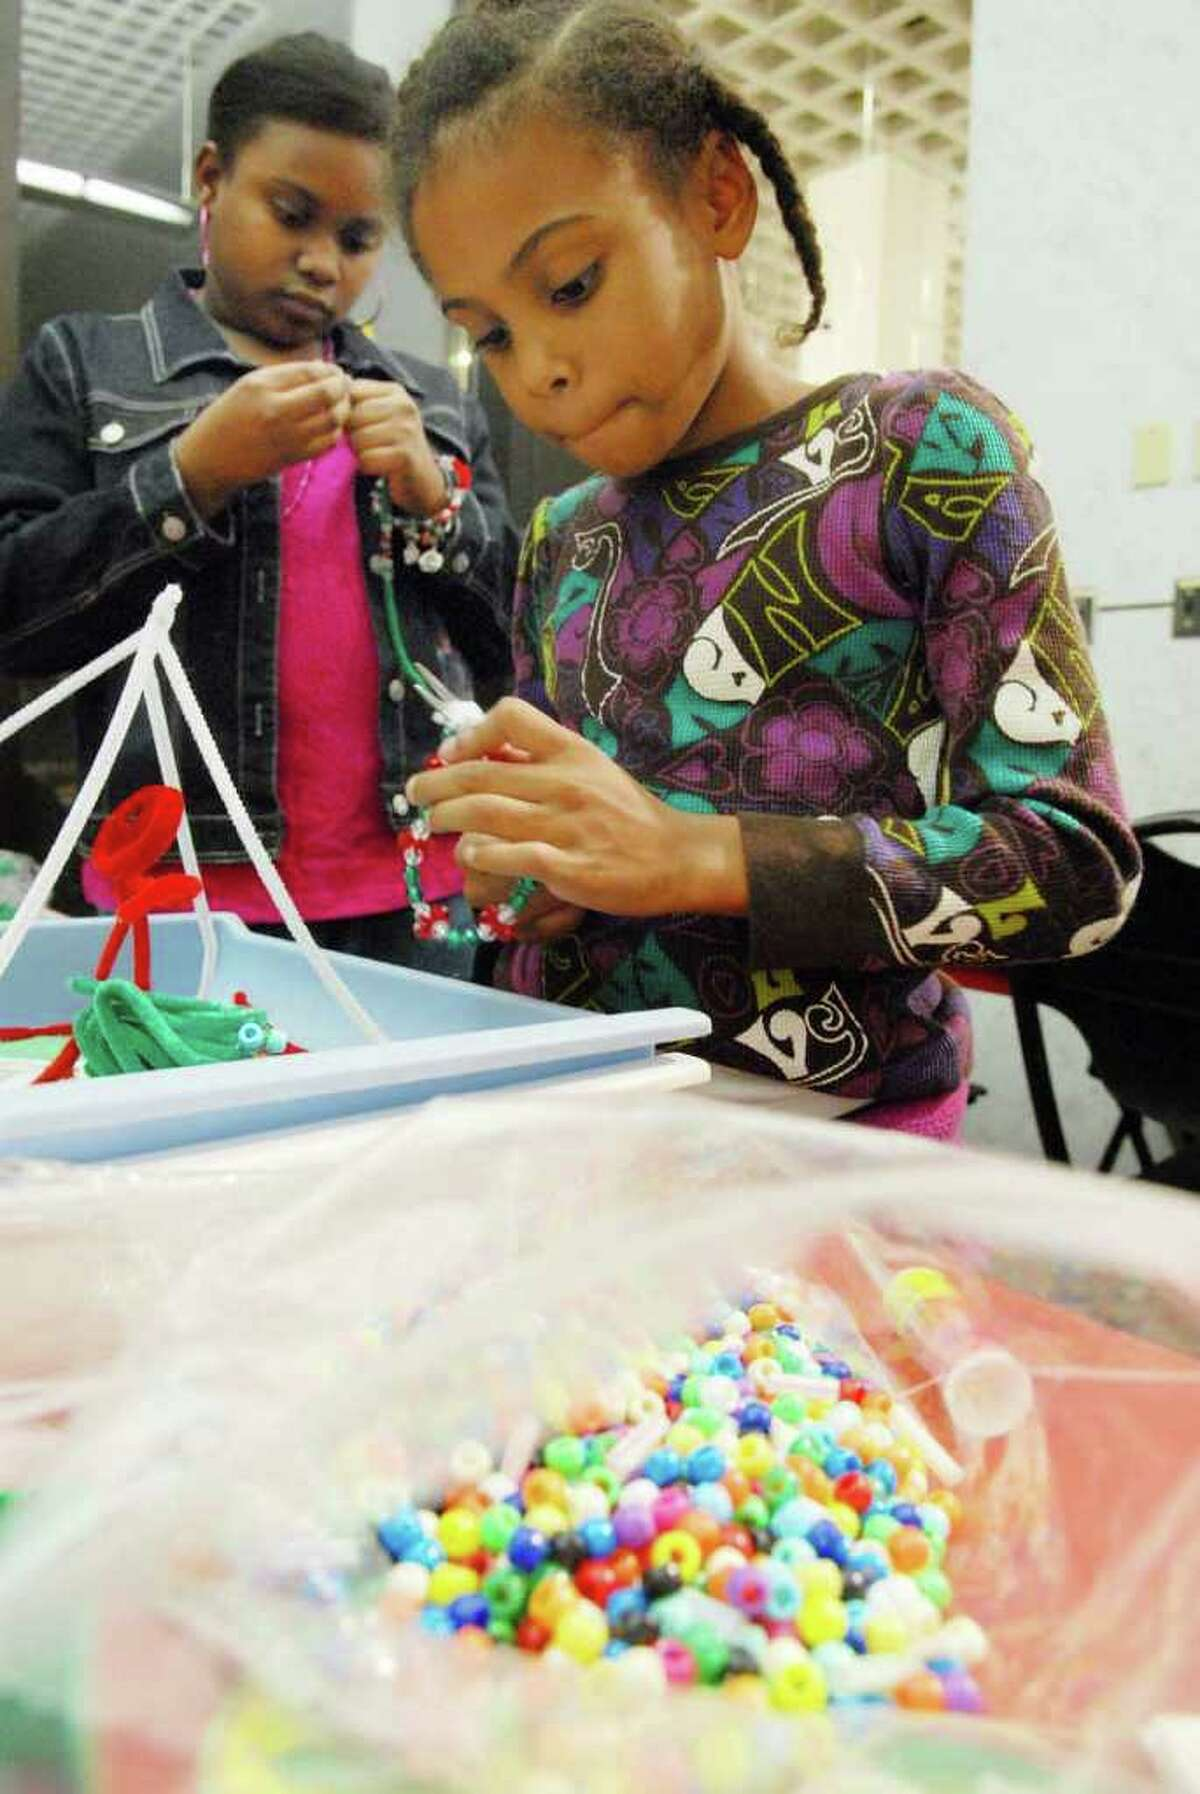 Naomi Shaw, 12, of Troy, left, and Elianna Jenkins-Taylor, visiting from Orlando, Fla., make bracelets at the craft table at the 26th annual Capital Kwanzaa Celebration at the State Museum. (Luanne M. Ferris / Times Union )